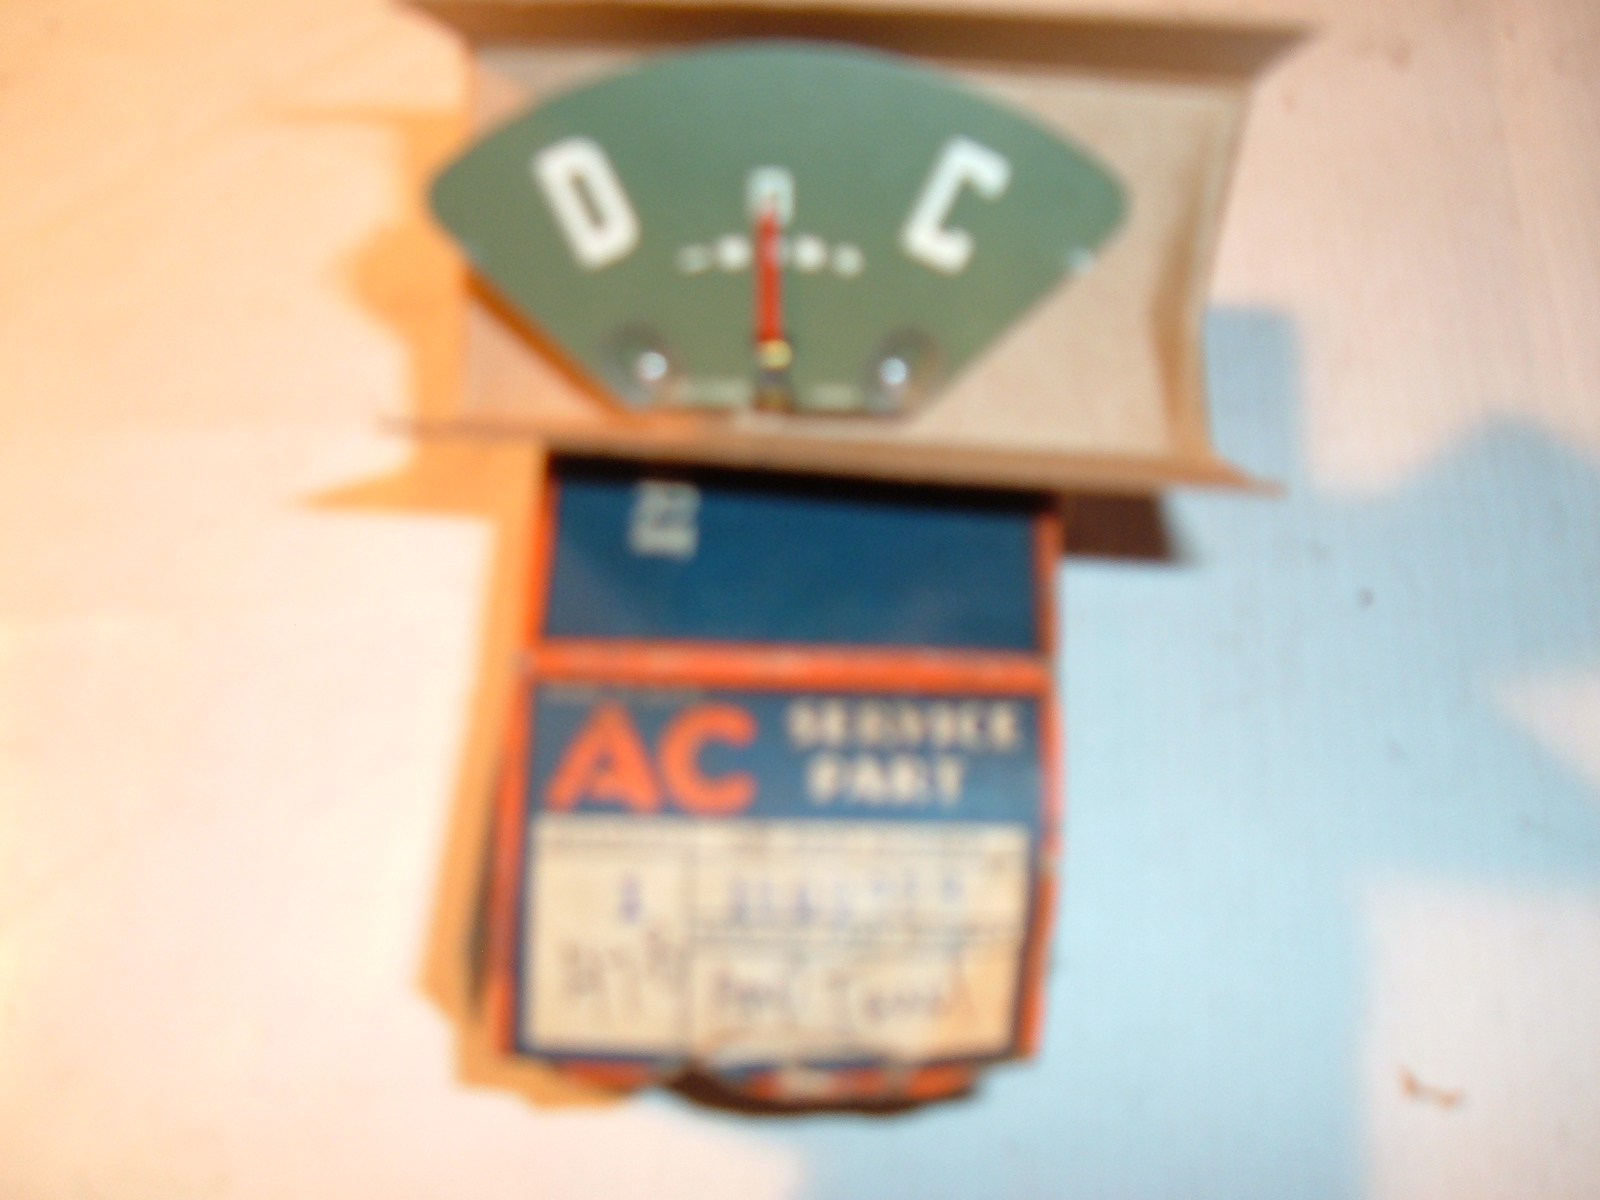 1947 48 chevrolet truck ammeter gauge dash unit nos gm # 1500928 (z 1500928)